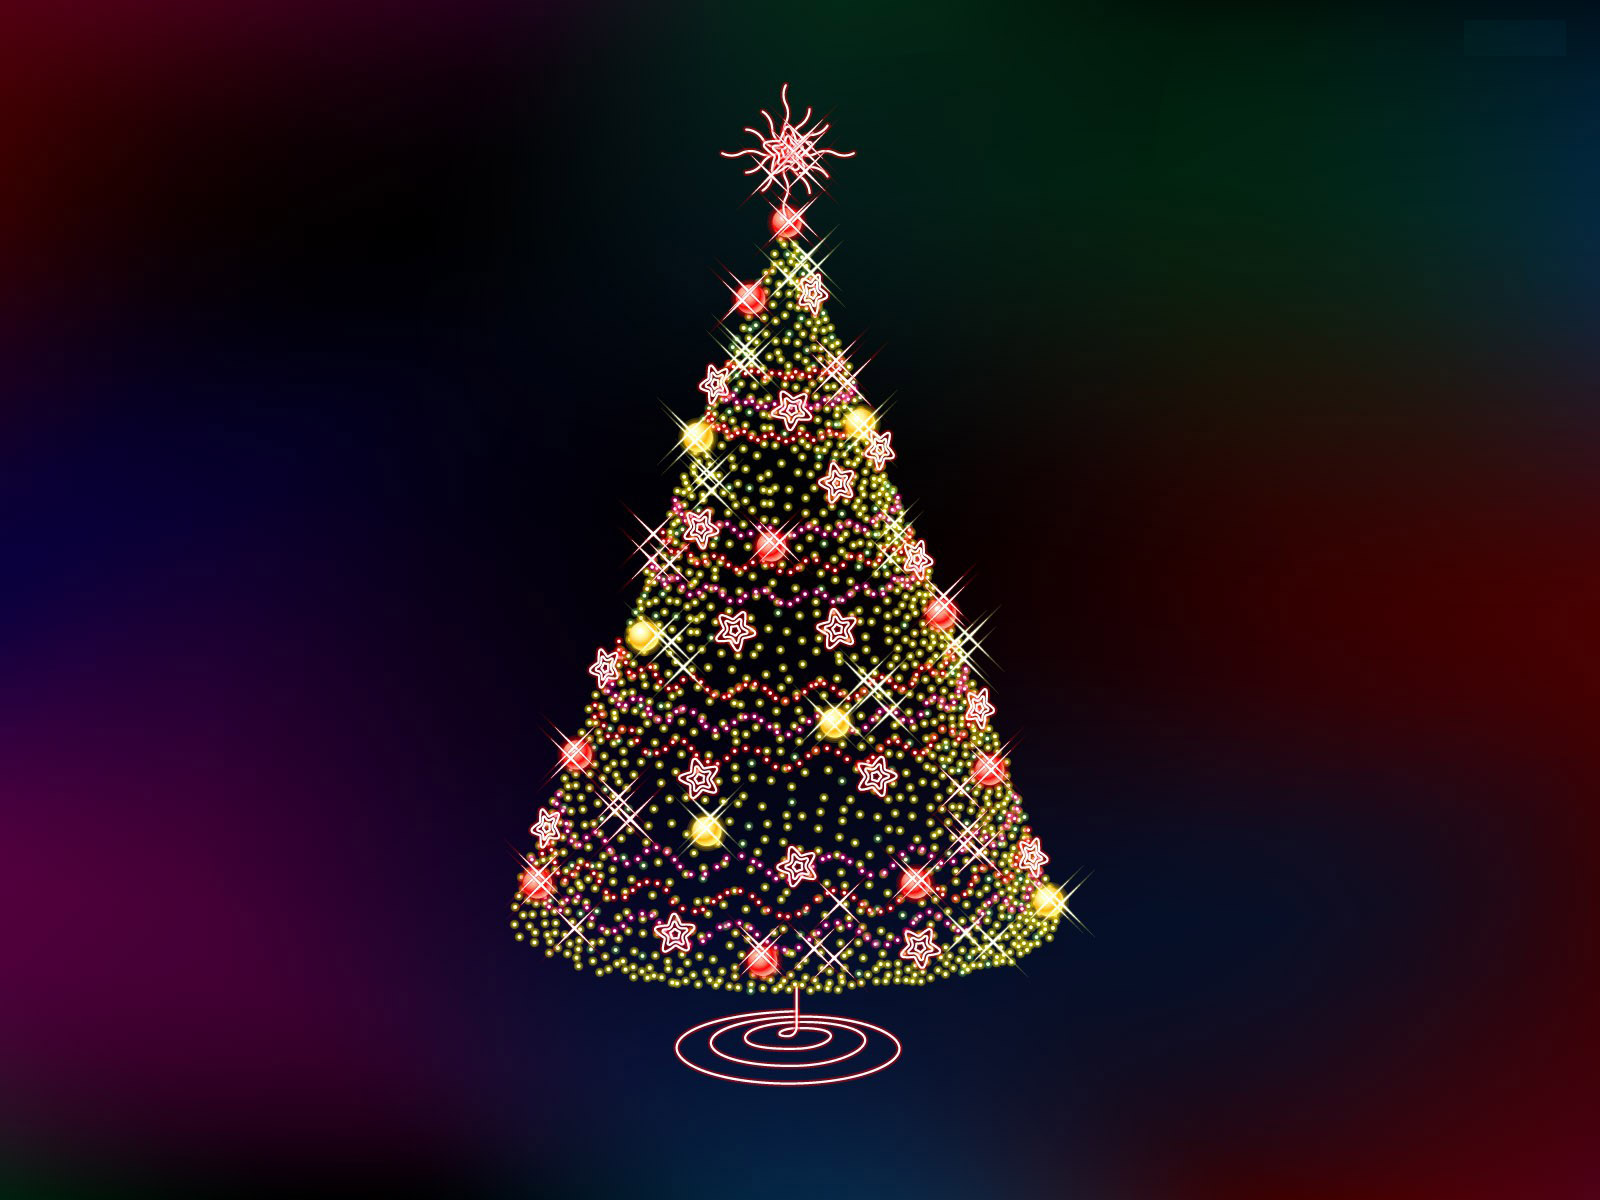 christmas wallpapers 2013 2014 valentines day ideas wallpaper alay com hd